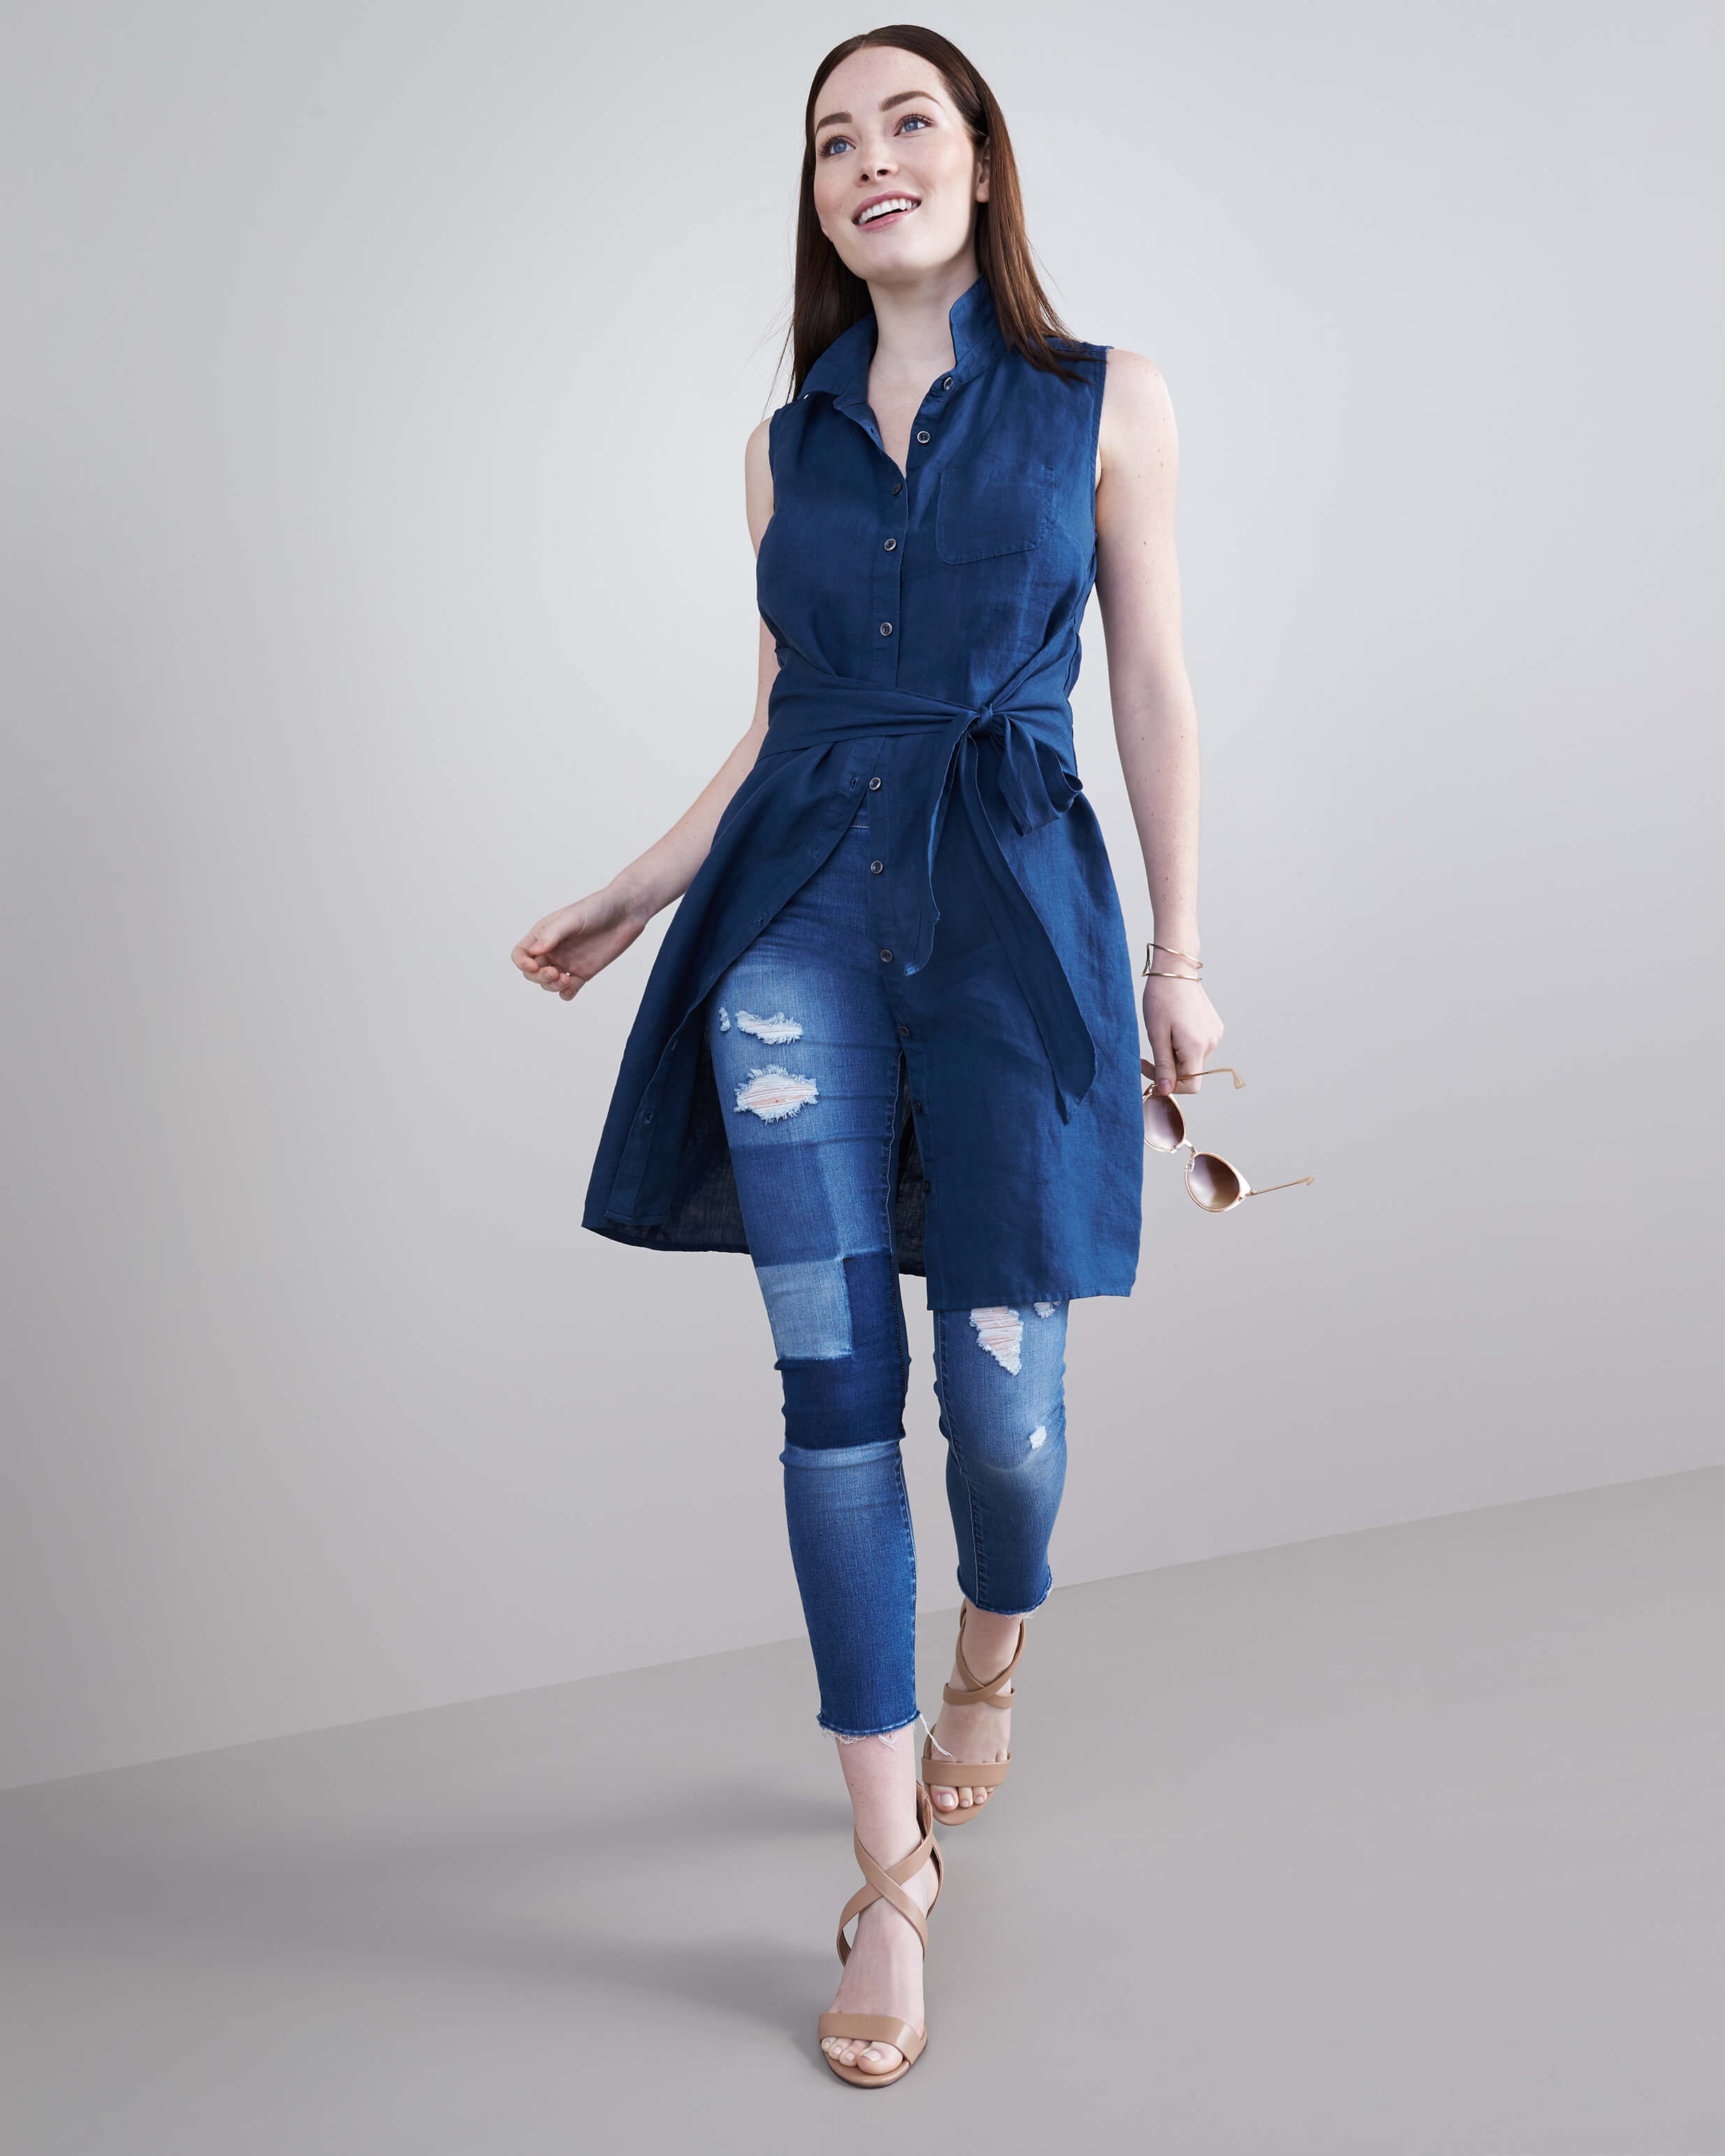 043ec0e90e98 How To Wear Summer s Trickiest Trends